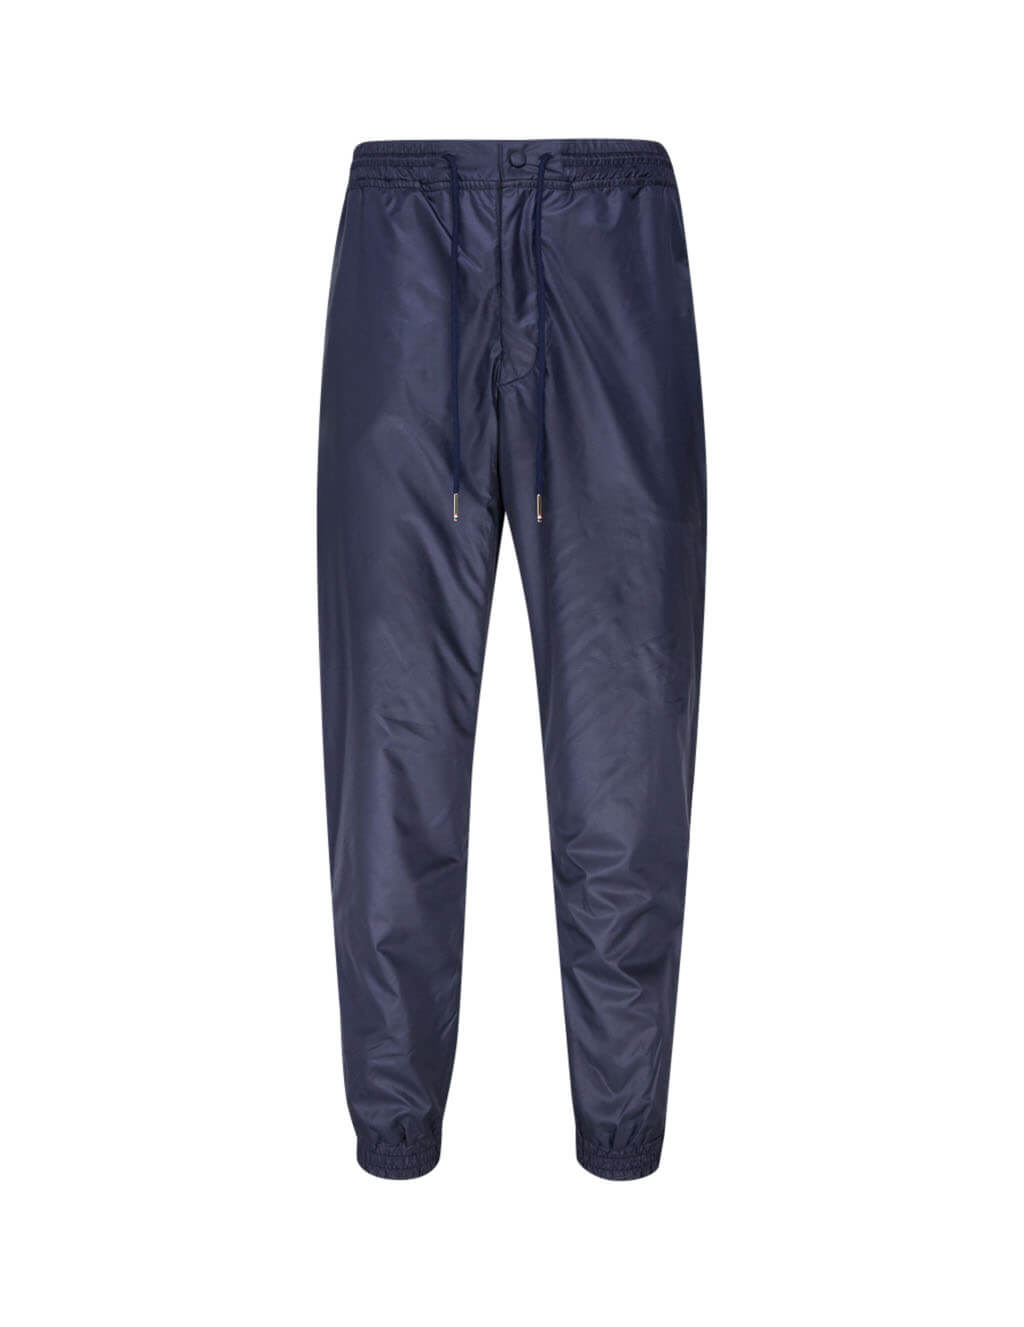 Thom Browne Men's Giulio Fashion Navy Ribbon Track Pants MJQ070A03215415